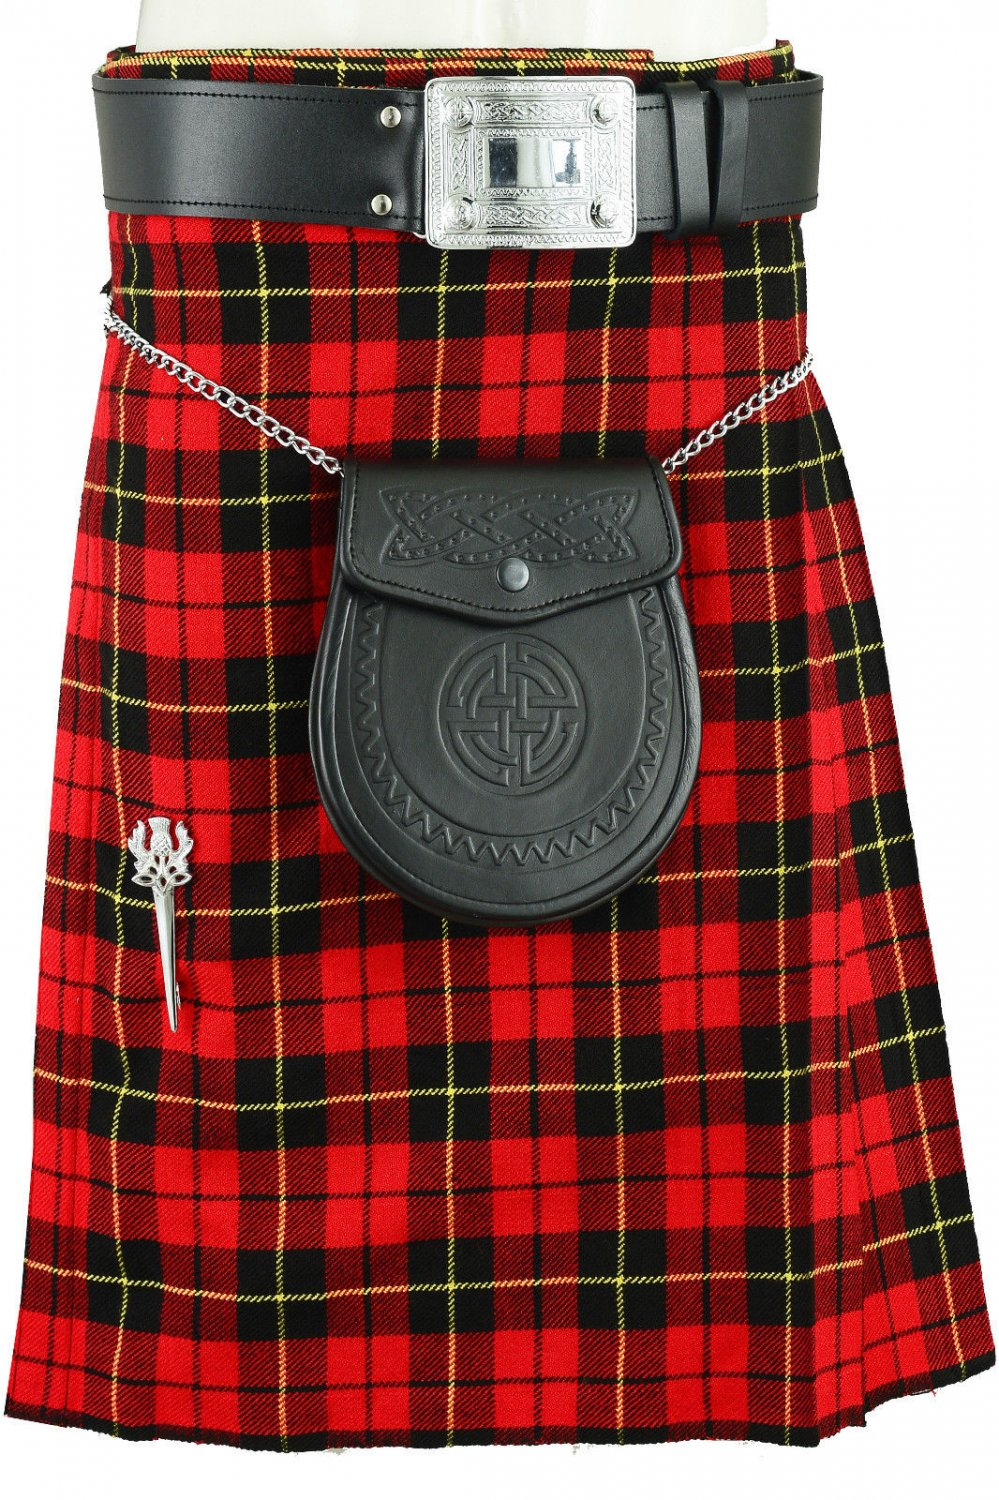 New Traditional Wallace Tartan Kilt of Size 32, Scottish Highland Utility and Sports Kilt